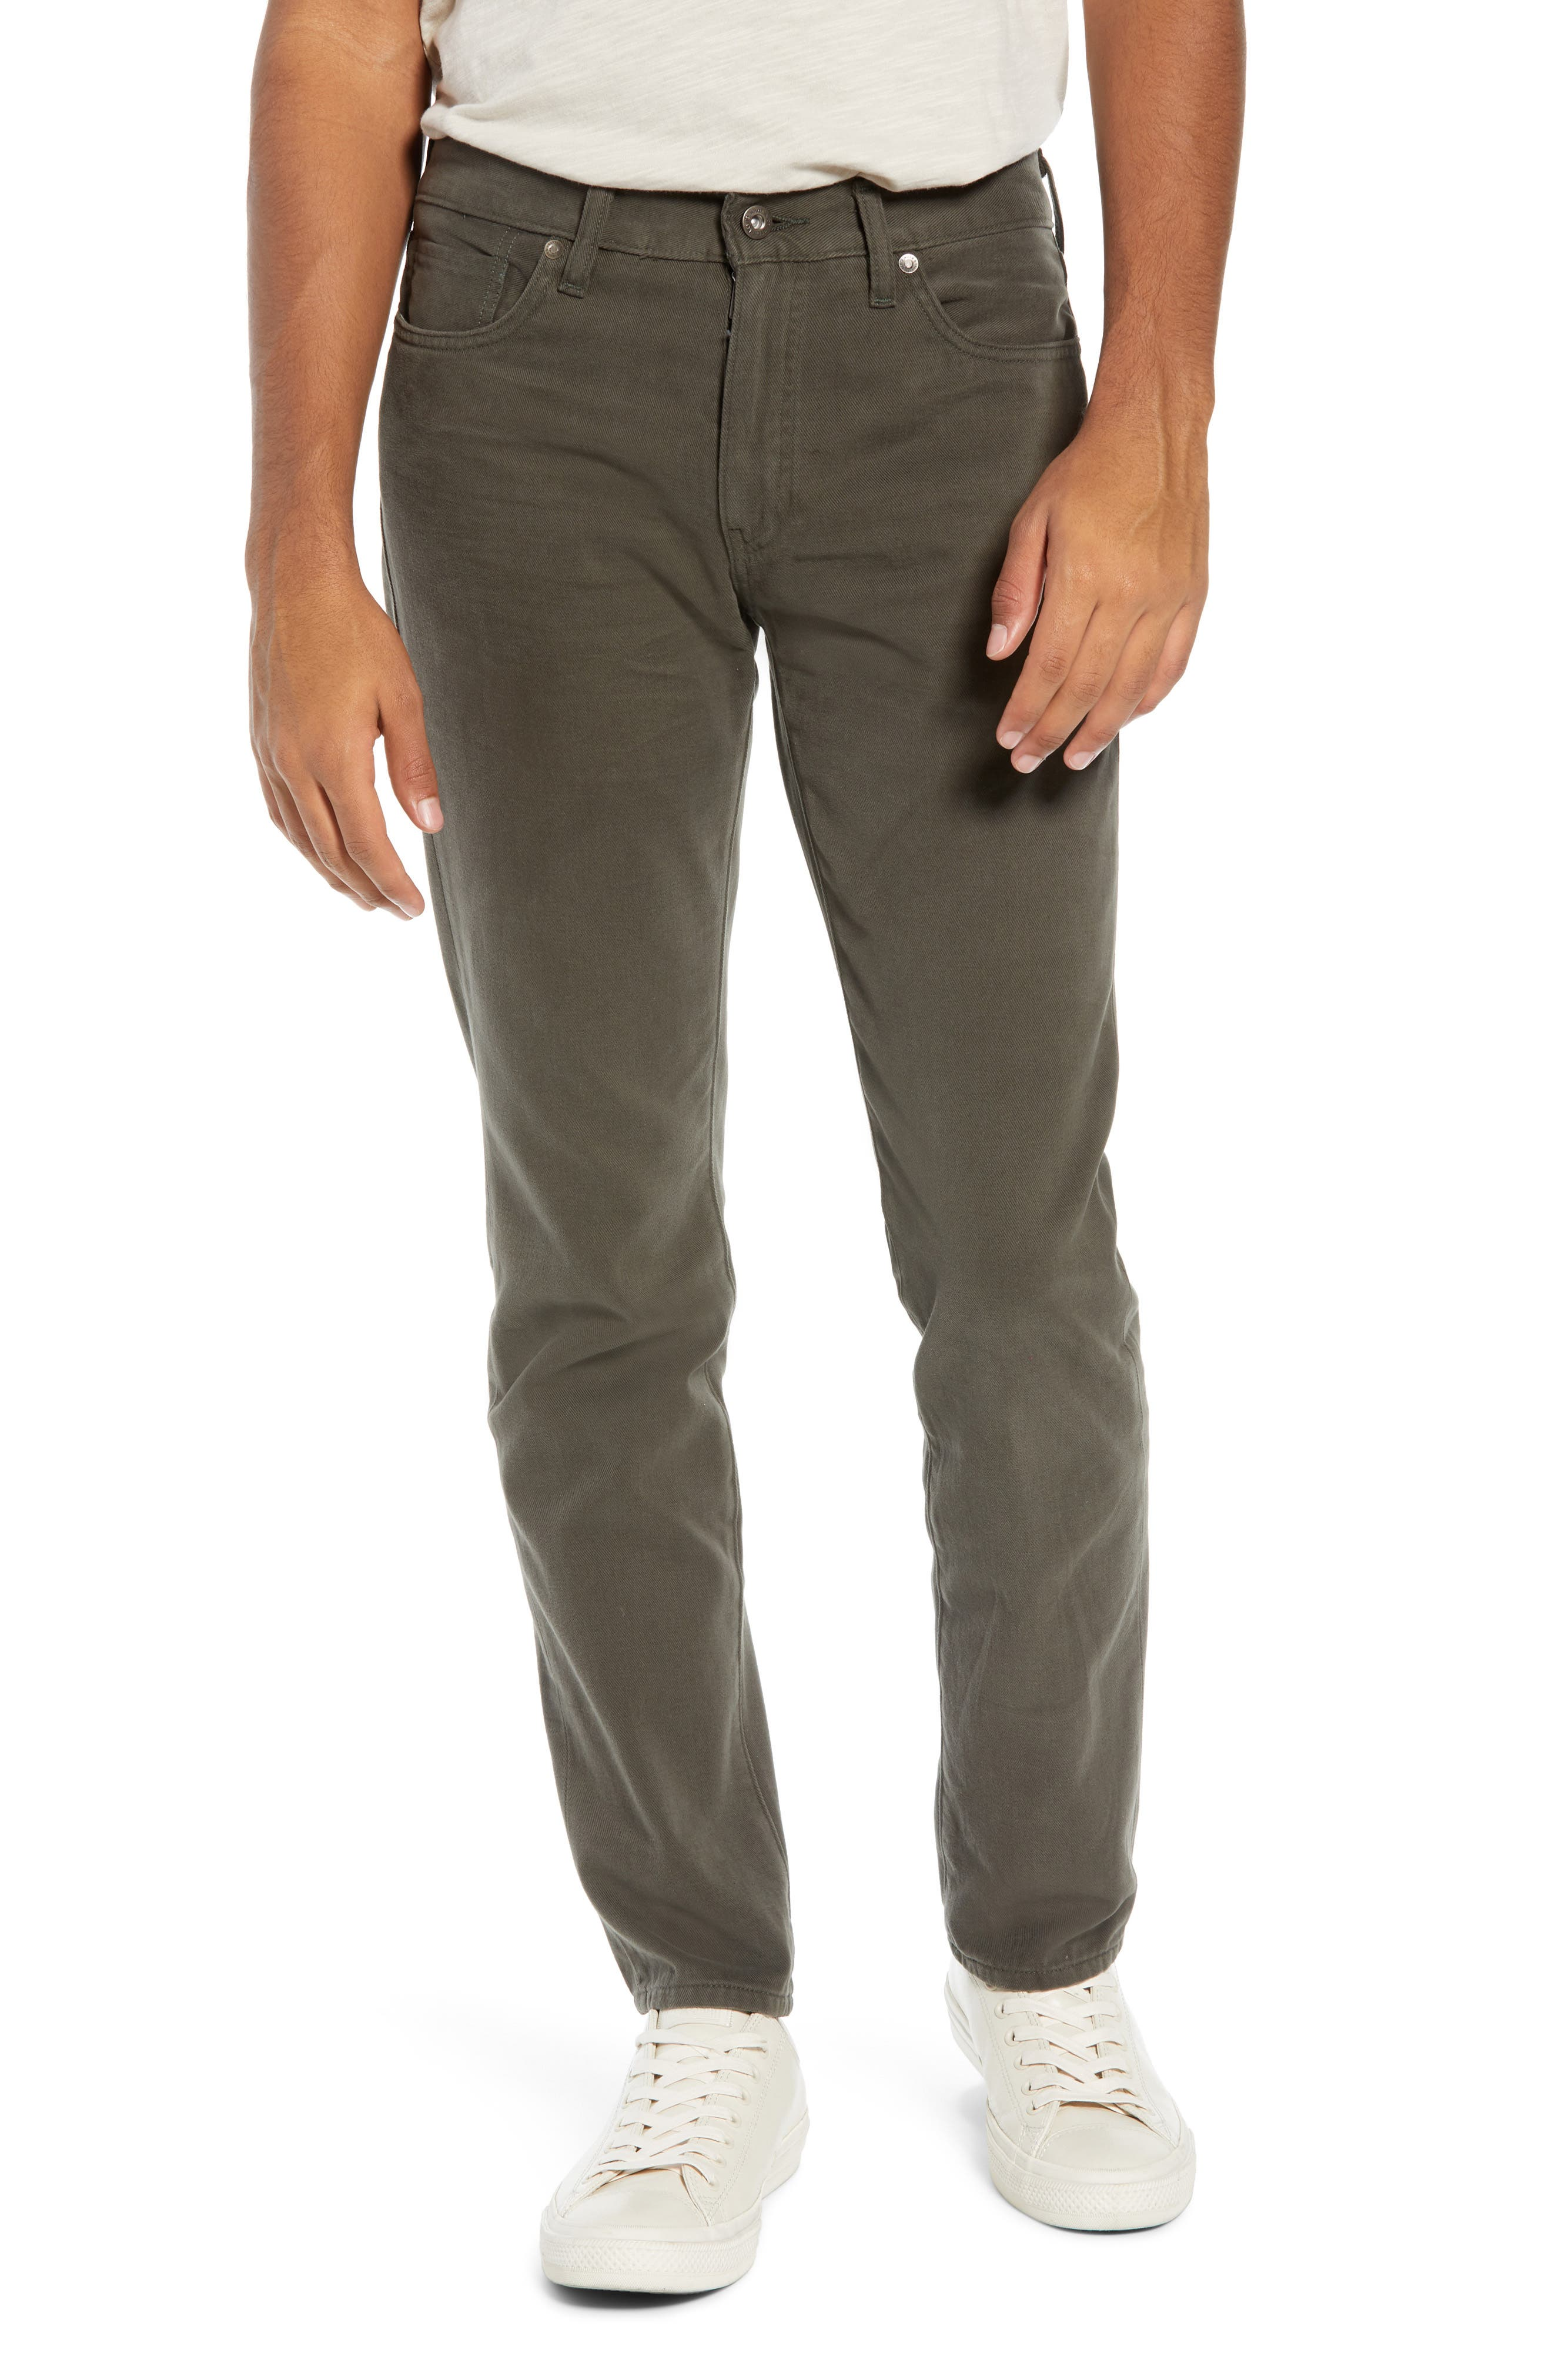 Levi's<sup>®</sup> Made & Crafted 511<sup>™</sup> Slim Fit Jeans,                             Main thumbnail 1, color,                             FERN